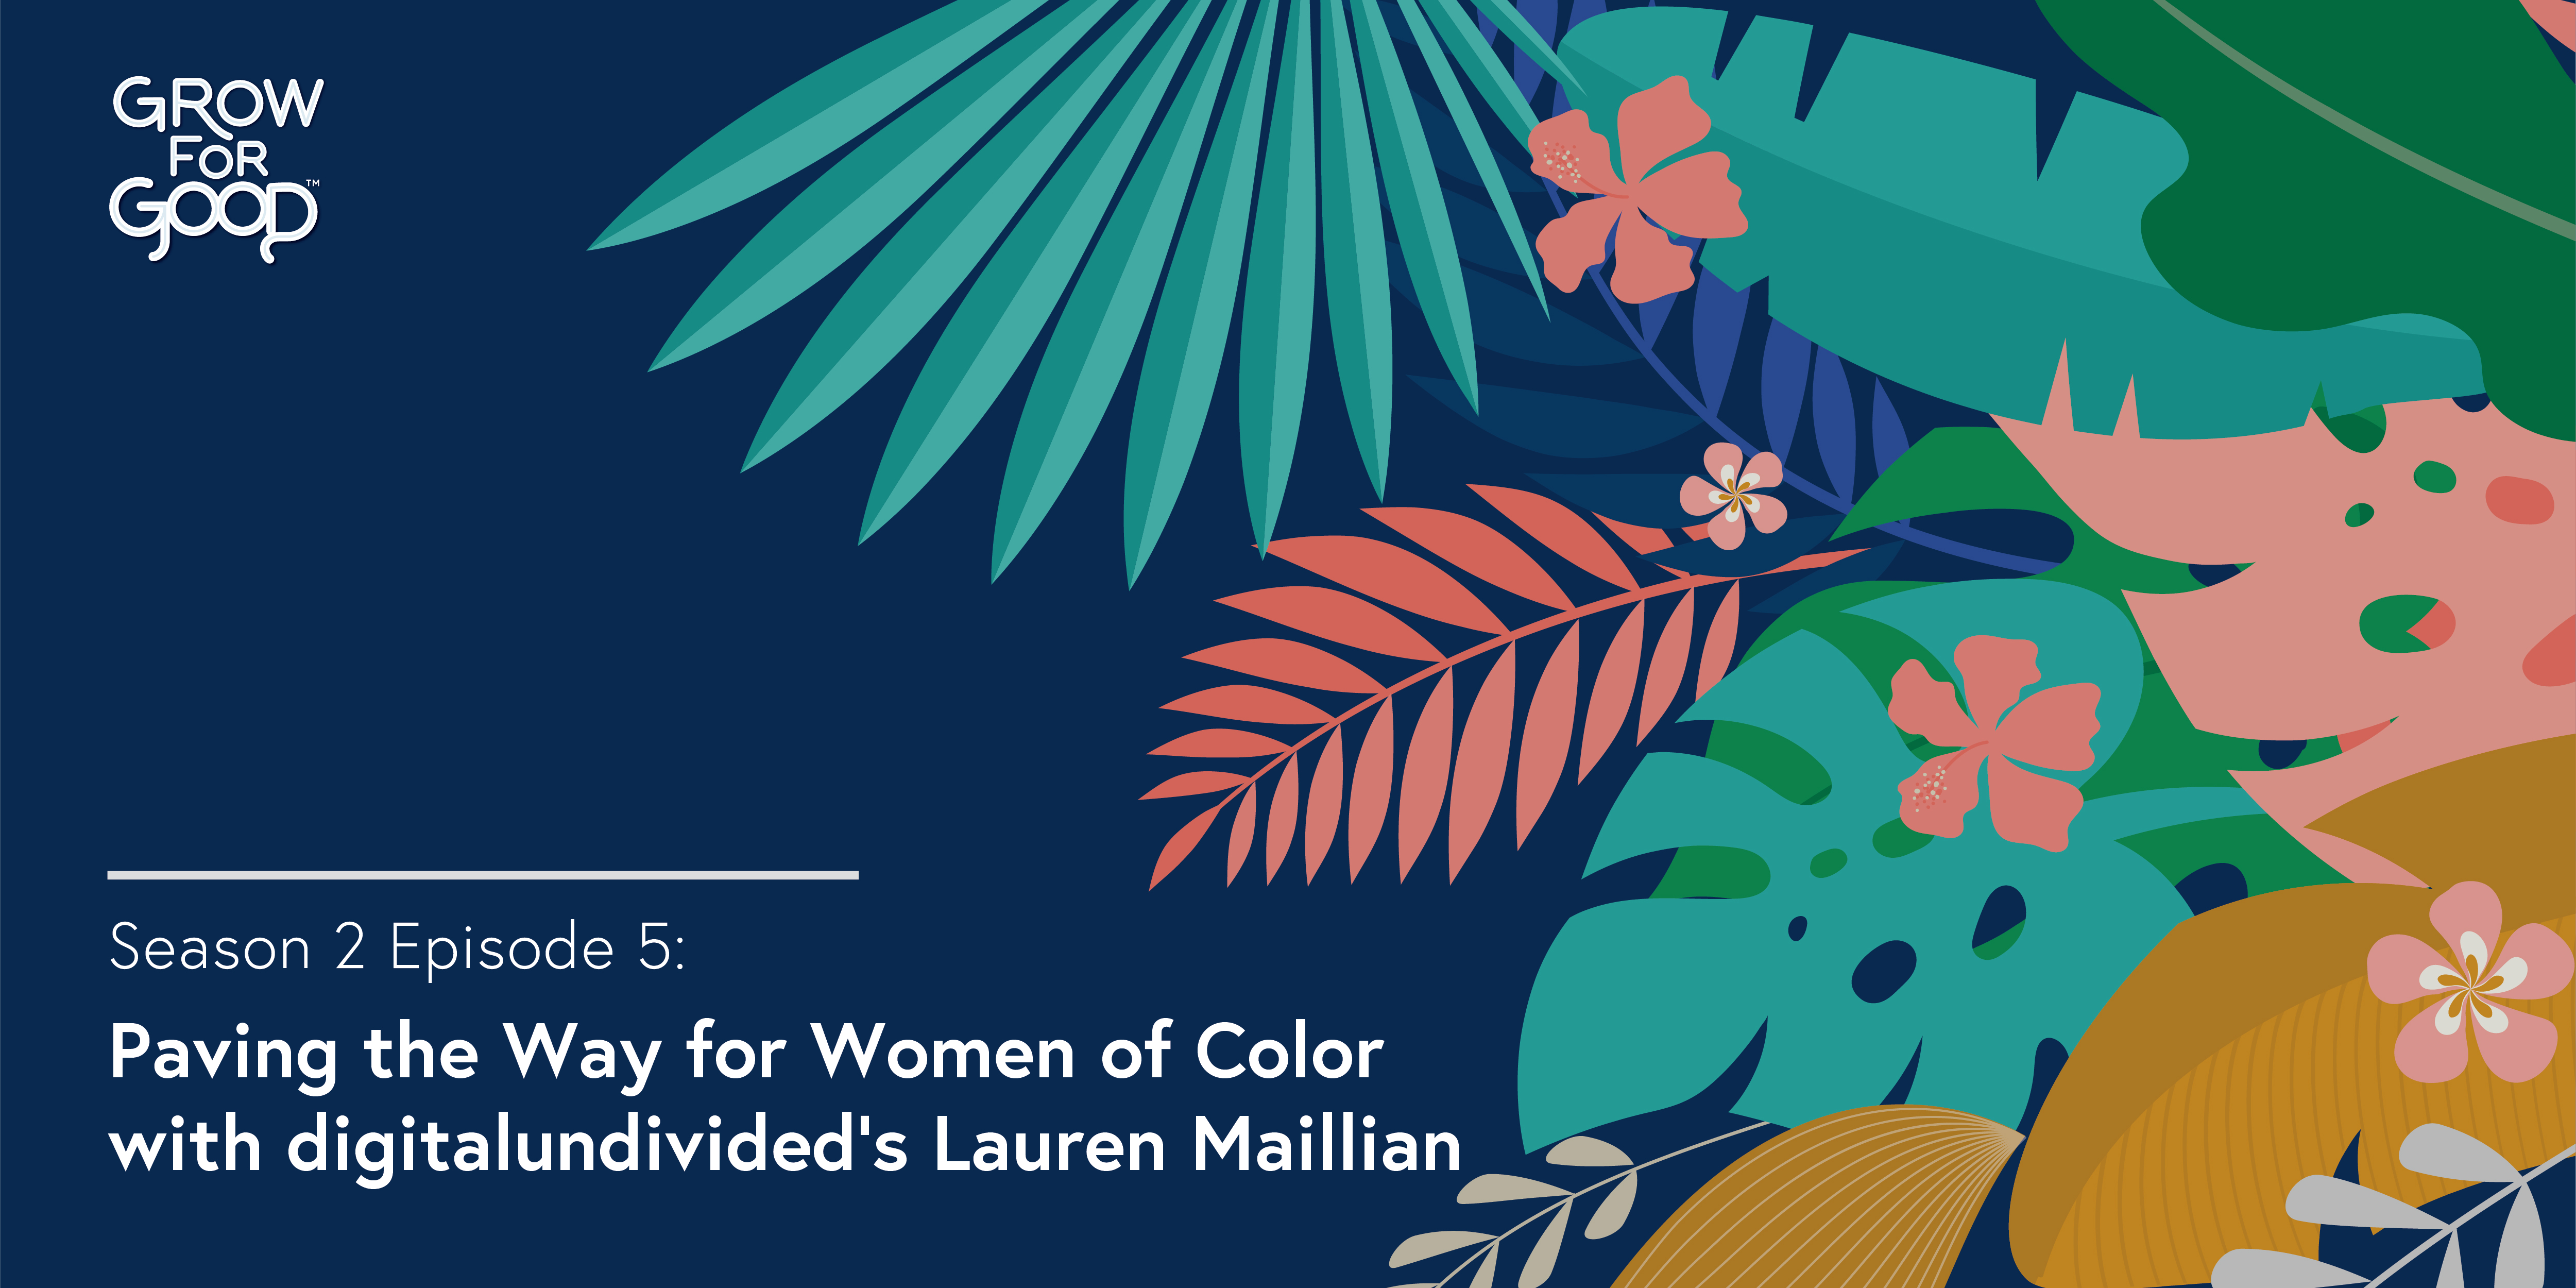 Grow For Good Podcast art- White text that says Season 2 Episode 5 Paving the Way for Women of Color with digitalundivideds Lauren Maillian on a dark purple background with tropical flowers